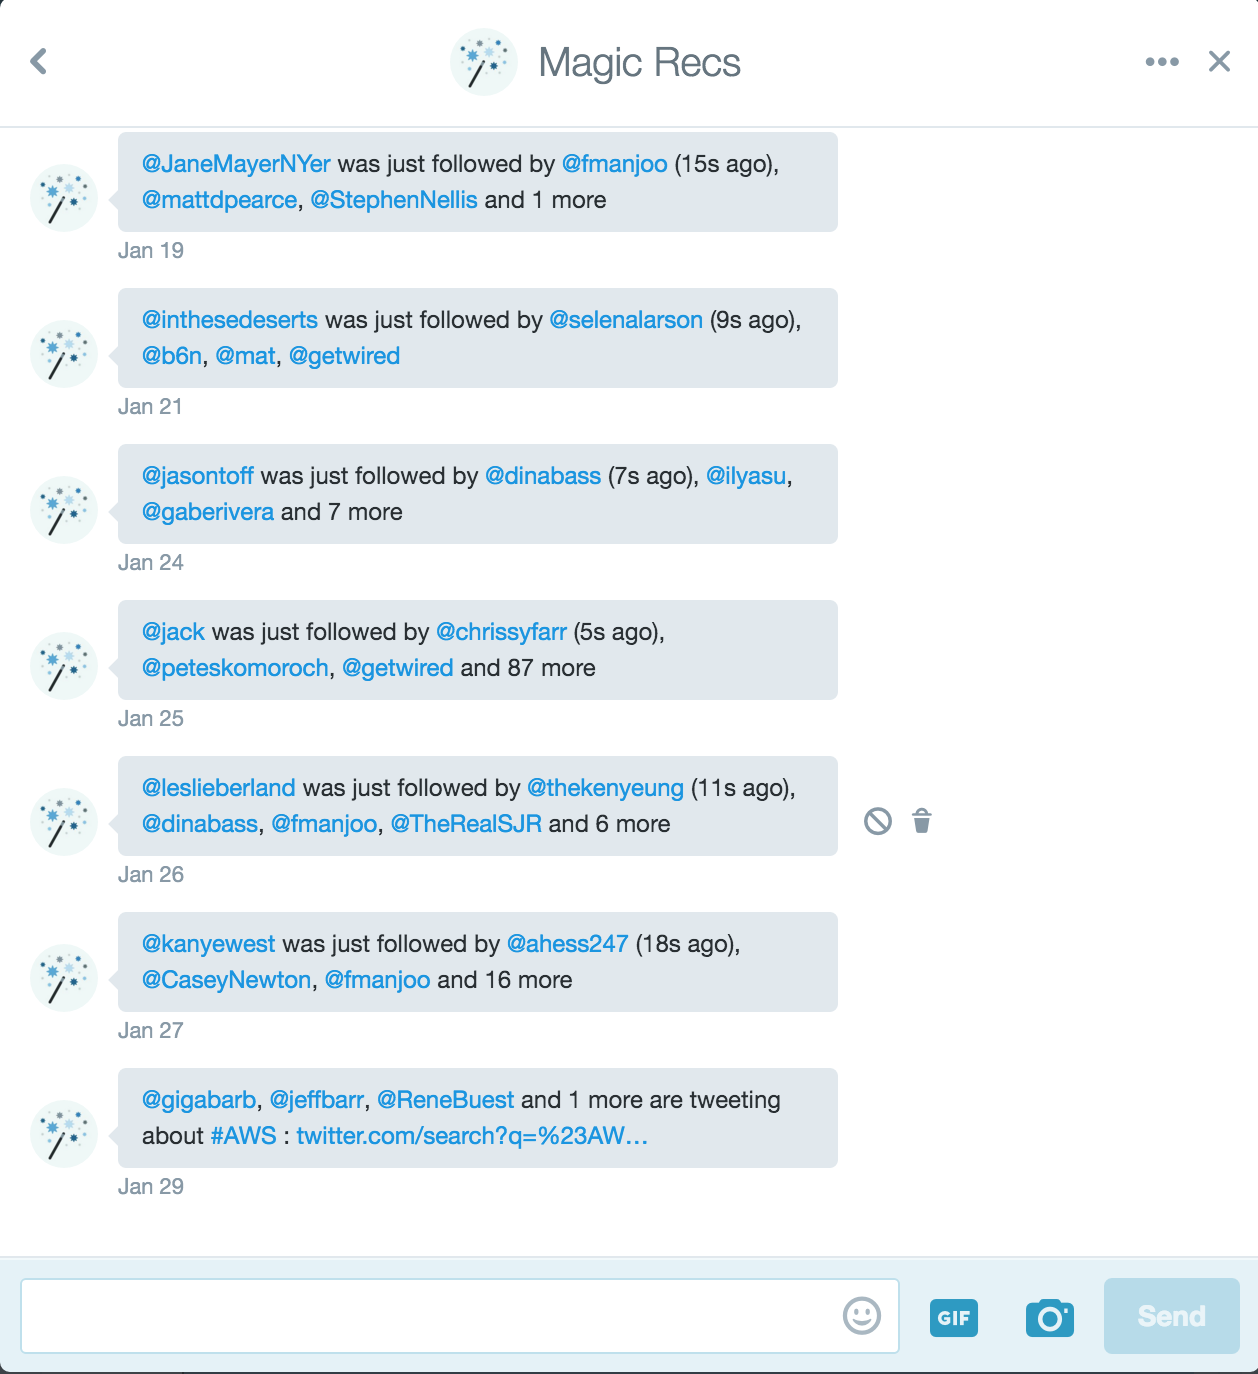 What Twitter's @MagicRecs account sends you by direct message.